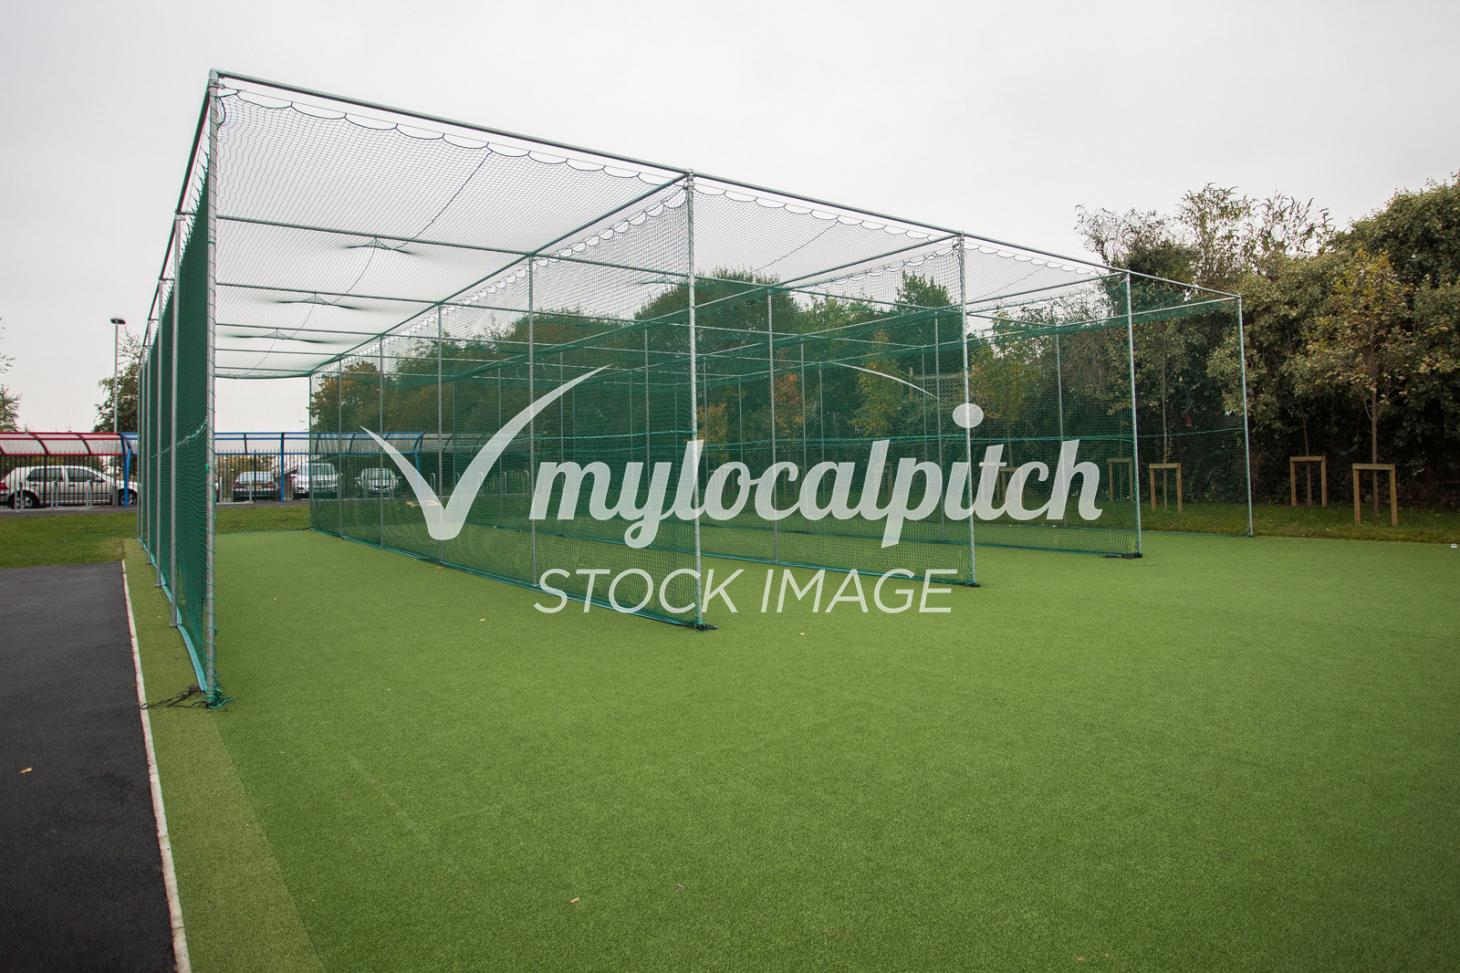 Sir Francis Barker Recreation Ground Nets | Artificial cricket facilities